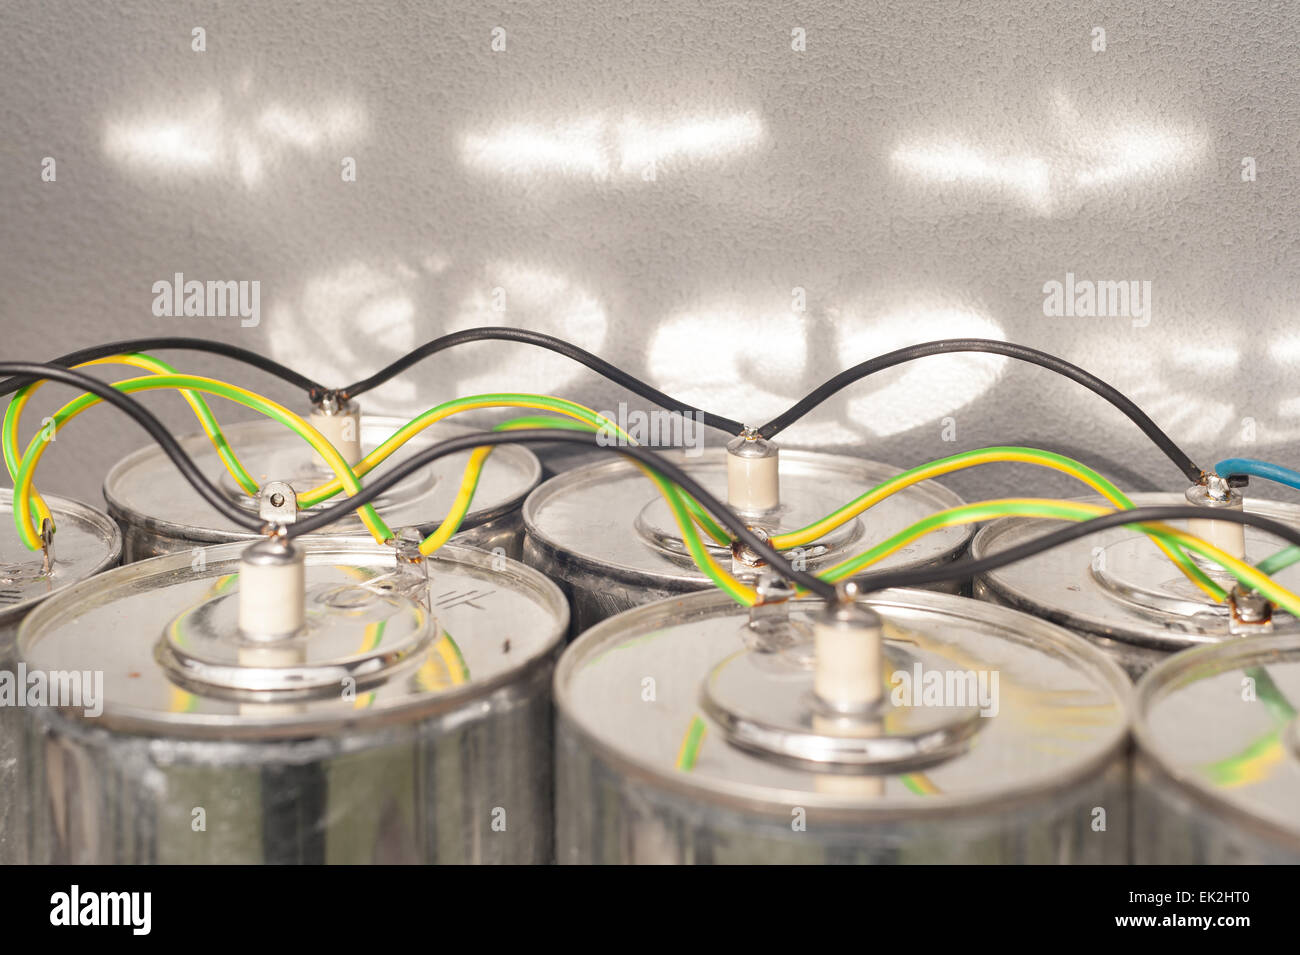 High Voltage Terminal Stock Photos Dangers Of Aluminum Wiring Dangerous Monster Sized Capacitors Wired In Parallel With Heavy Gage Wire Store Enough And